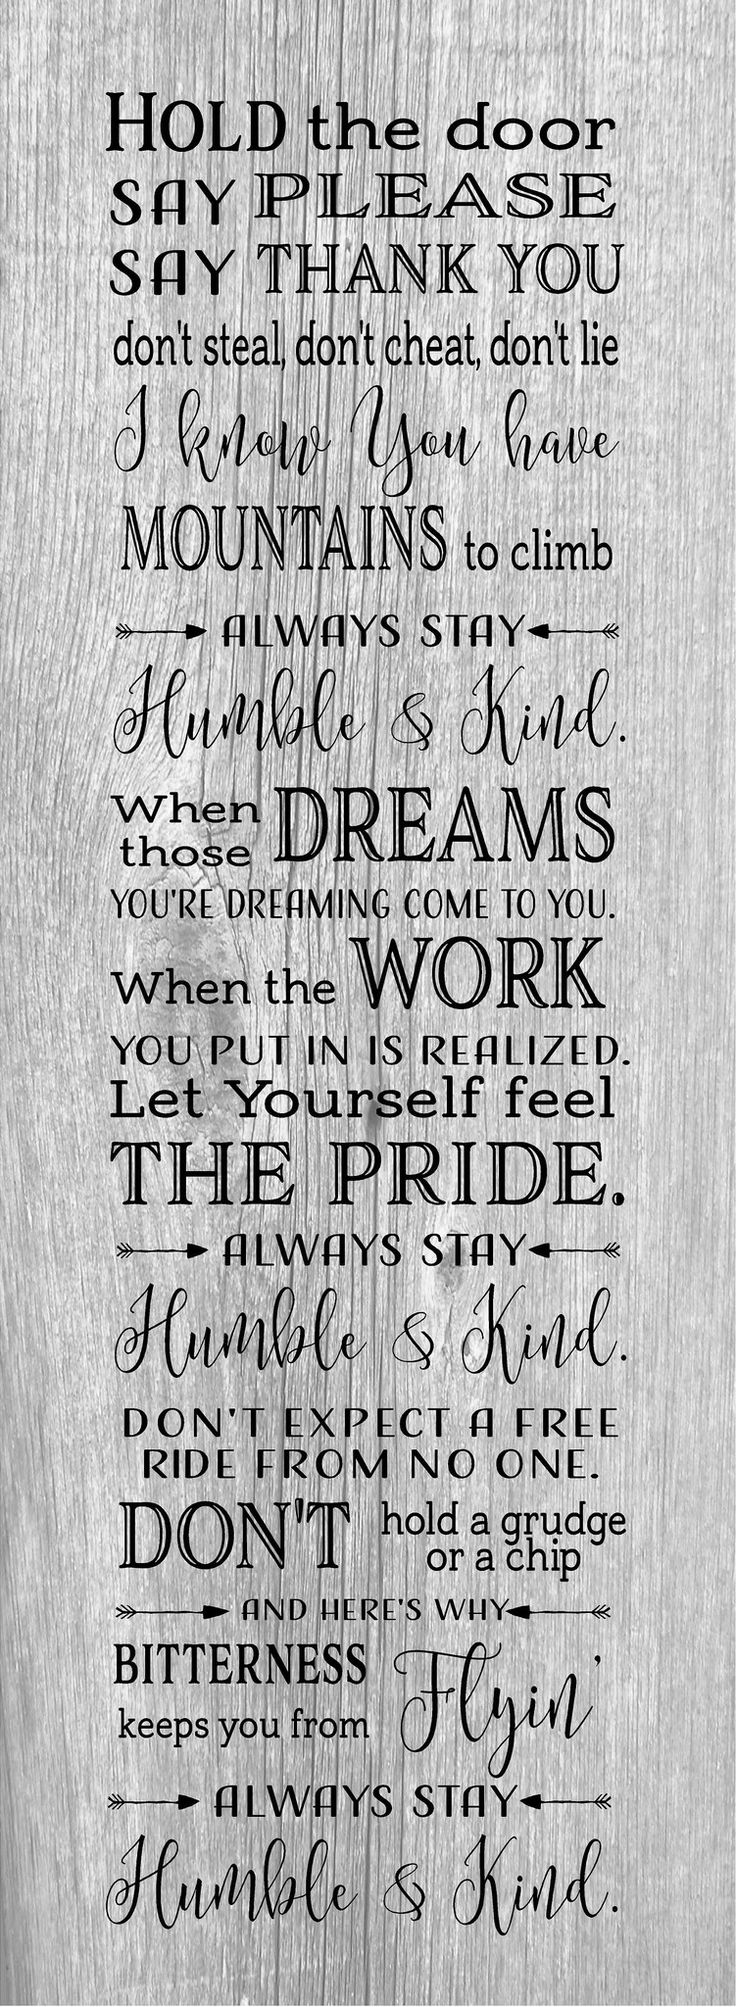 Always Stay Humble and Kind Tim McGraw Wood Sign, Canvas Wall Art, Banner - Dorm, Christmas, Teenager, New Baby,